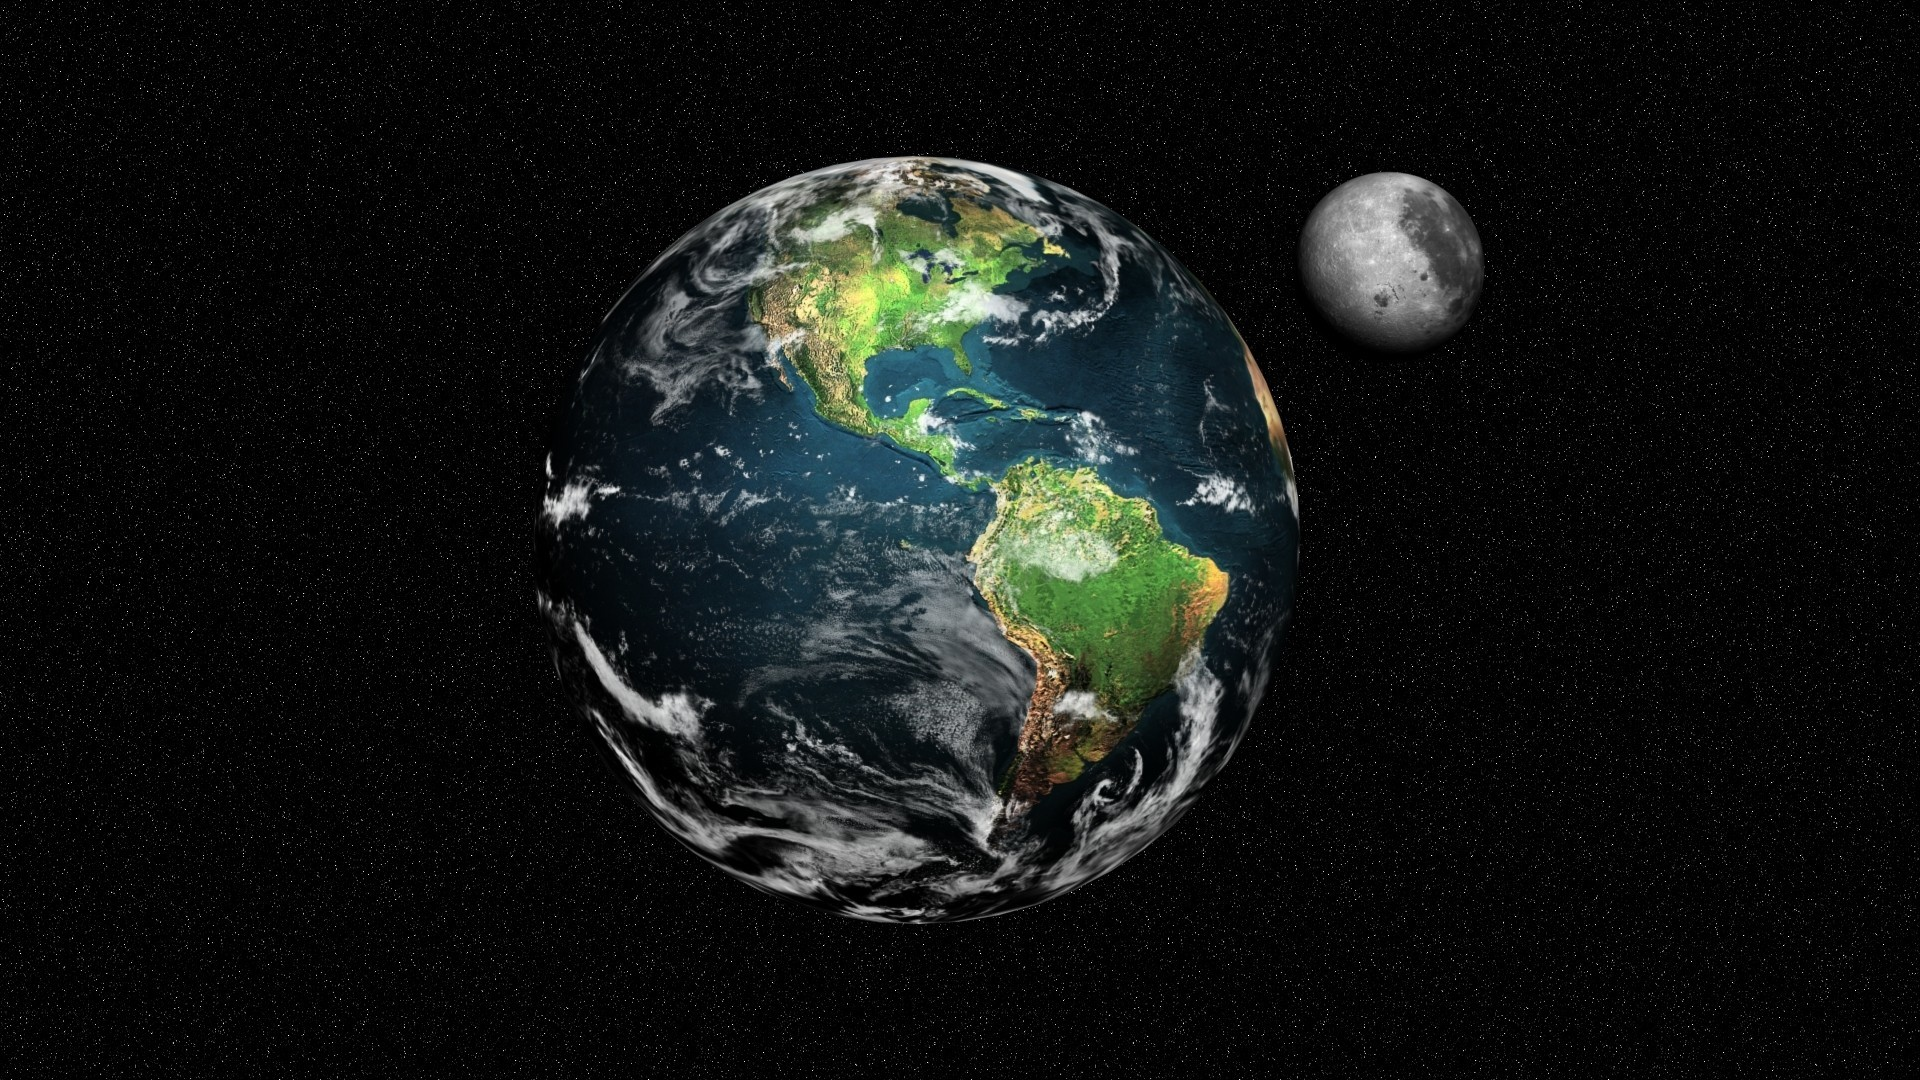 Earth From Space Hd Wallpaper 73 Images